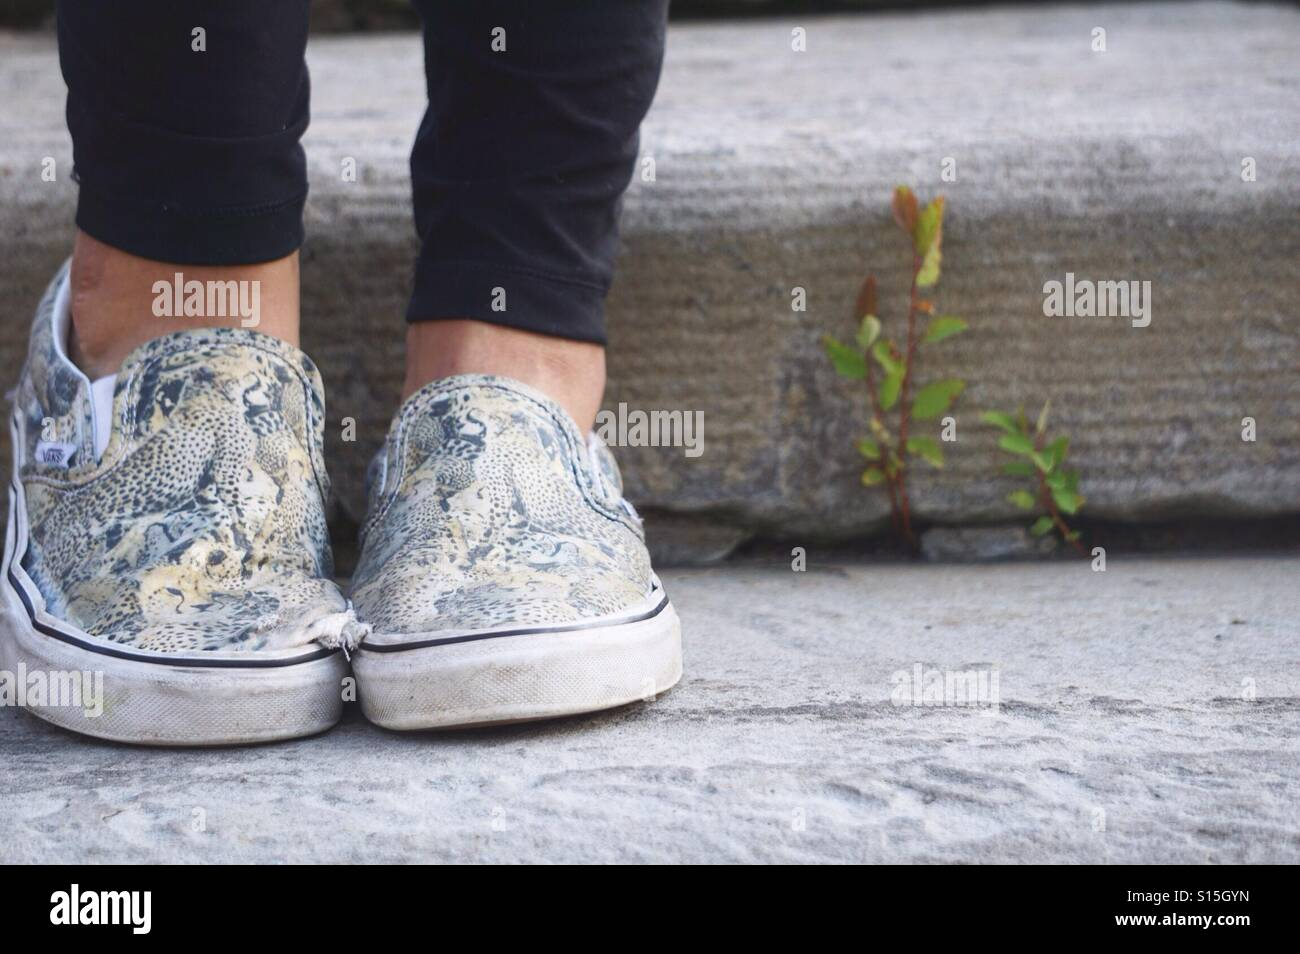 Feet in focus - Stock Image